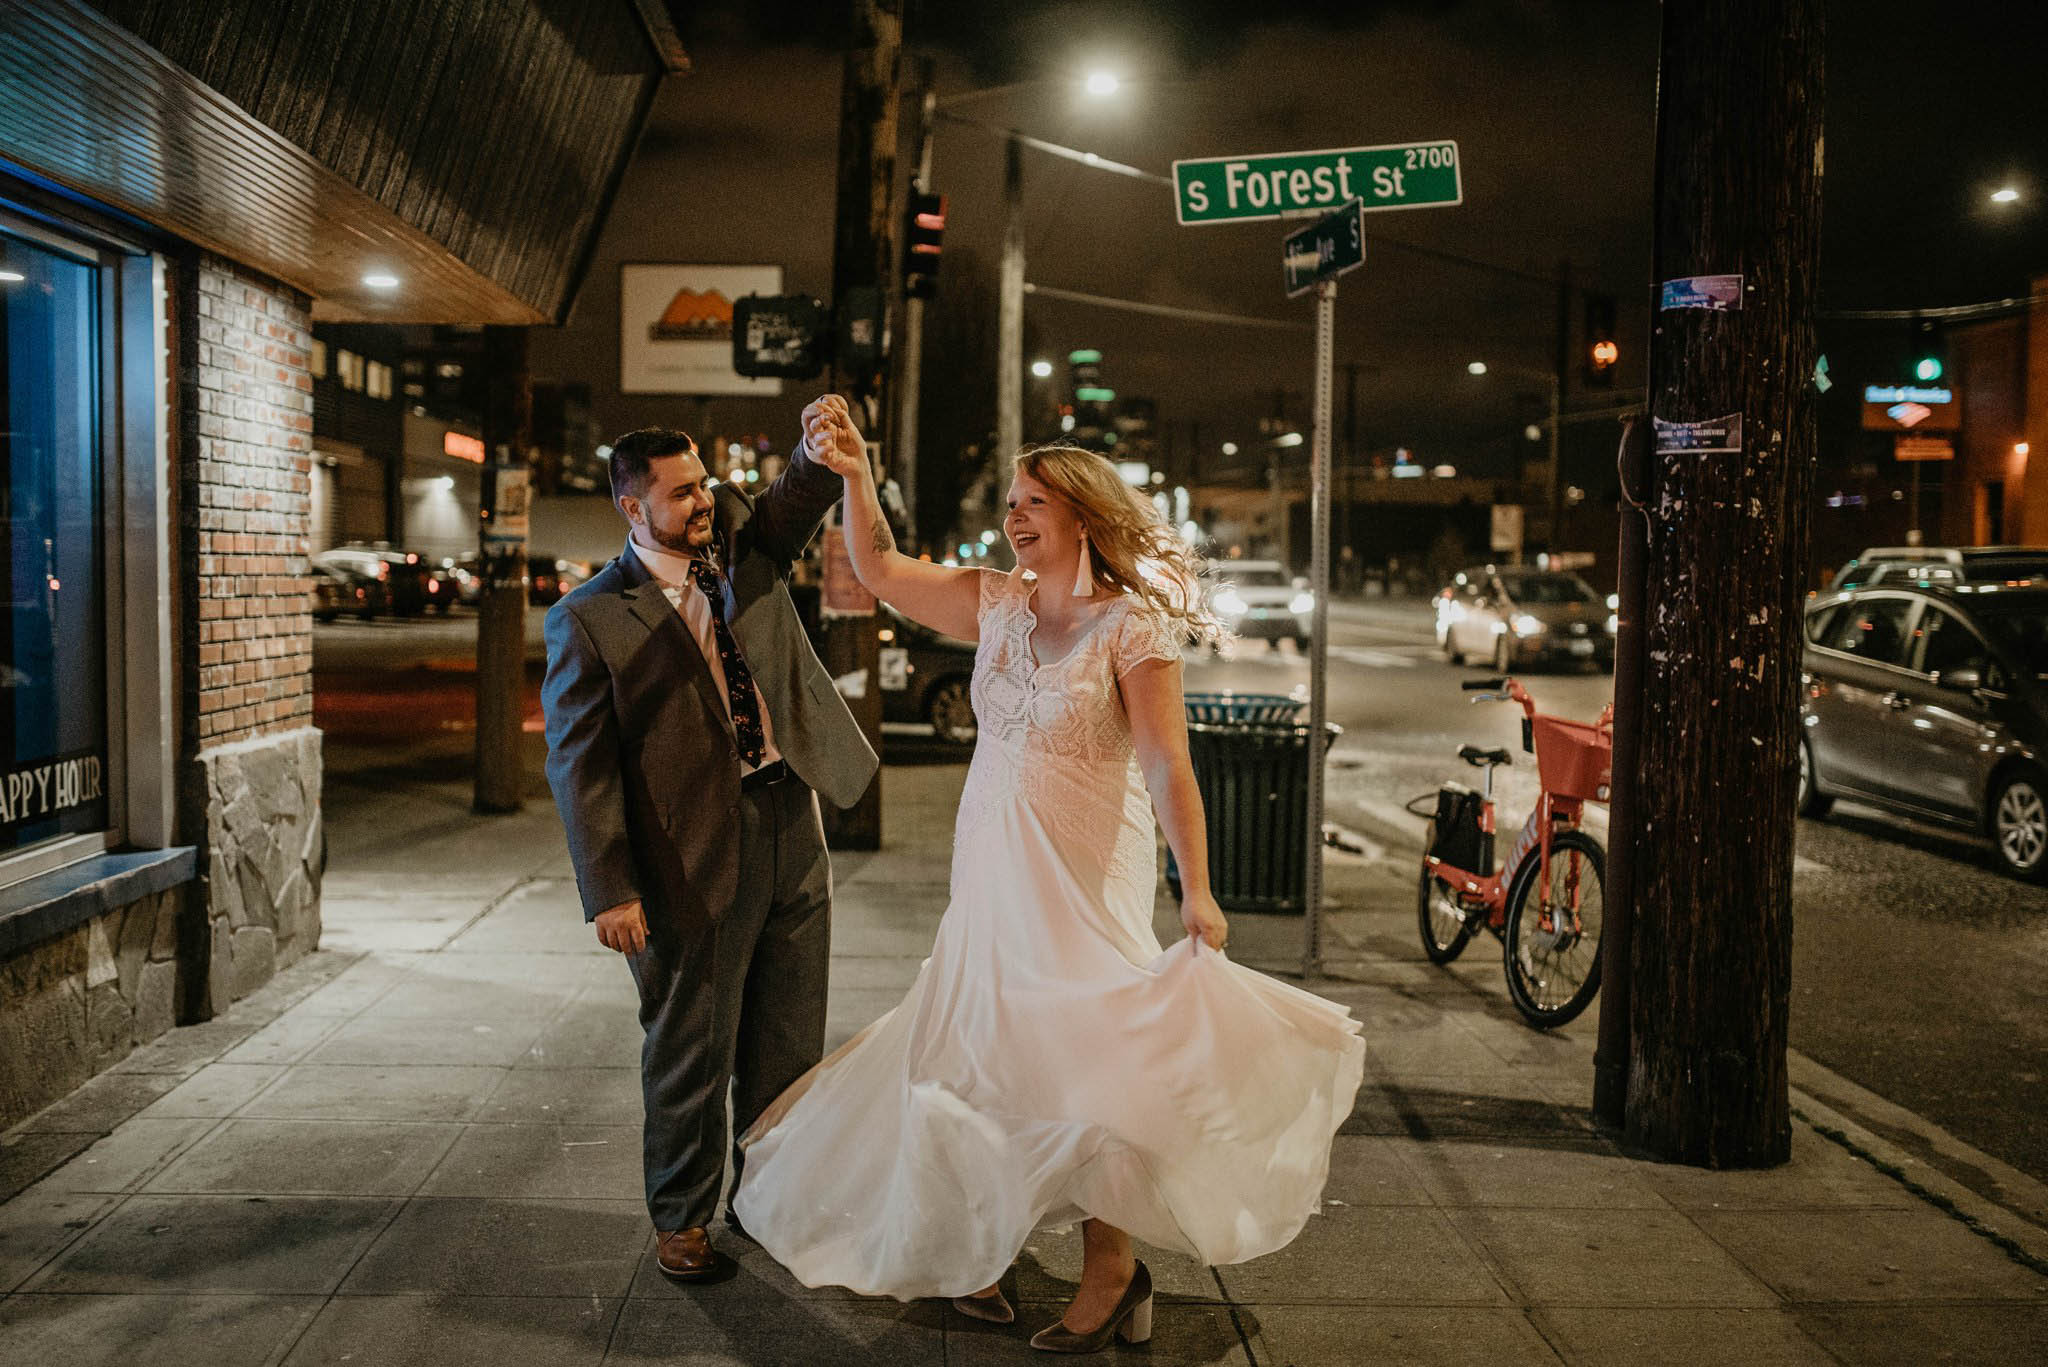 gwen-andrew-within-sodo-downtown-seattle-wedding-photographer-winter-84.jpg